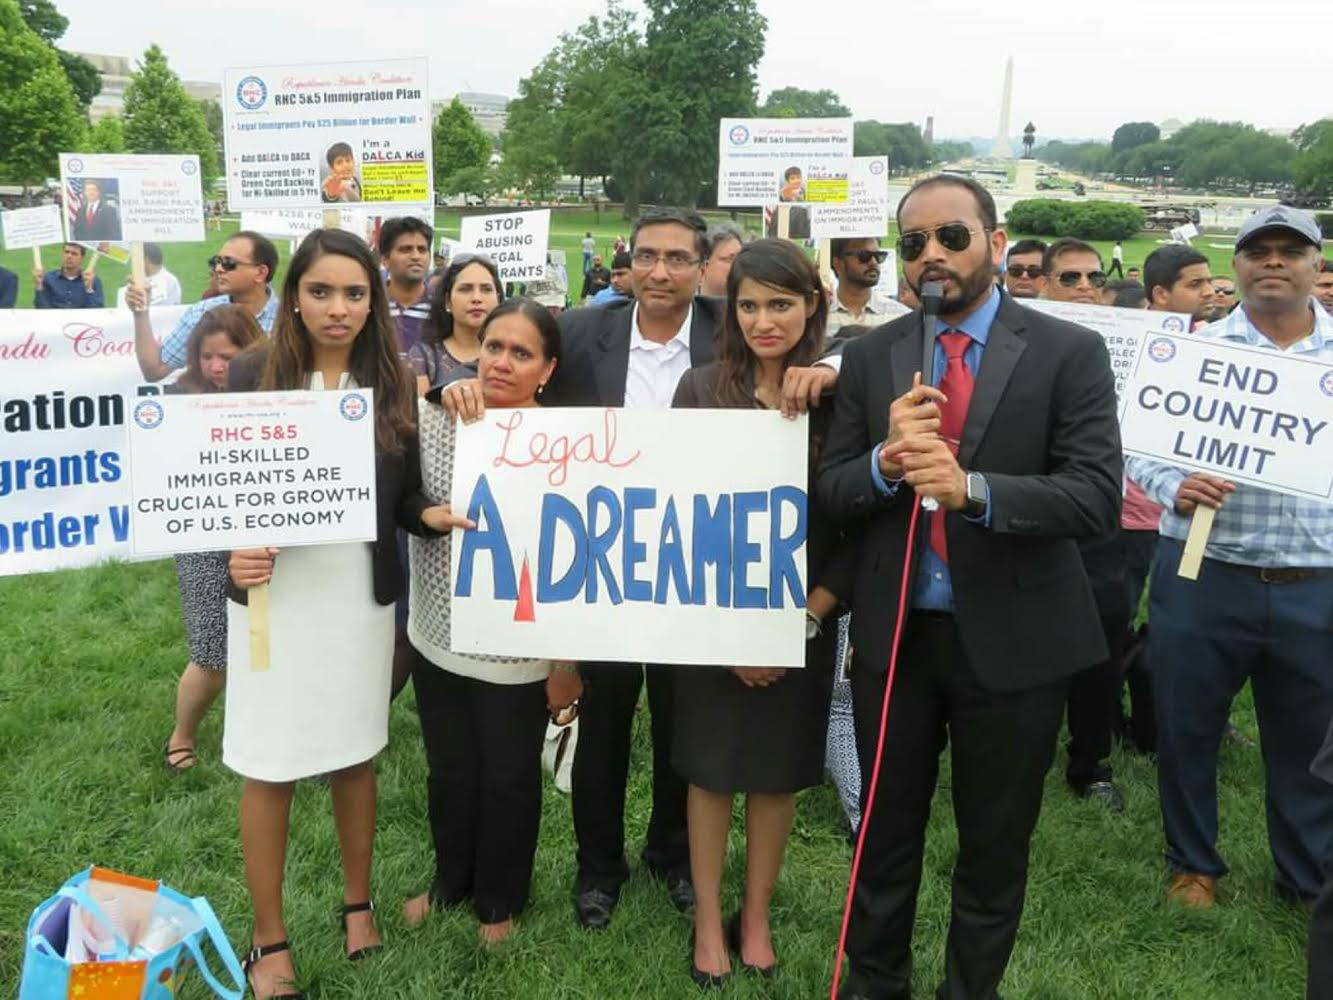 Janvi Mehta, an aged out DALCA kid, is seen with her parents and sister at left, at an immigration rally on Capitol Hill urging US lawmakers to pass legislation protecting the legal Dreamers